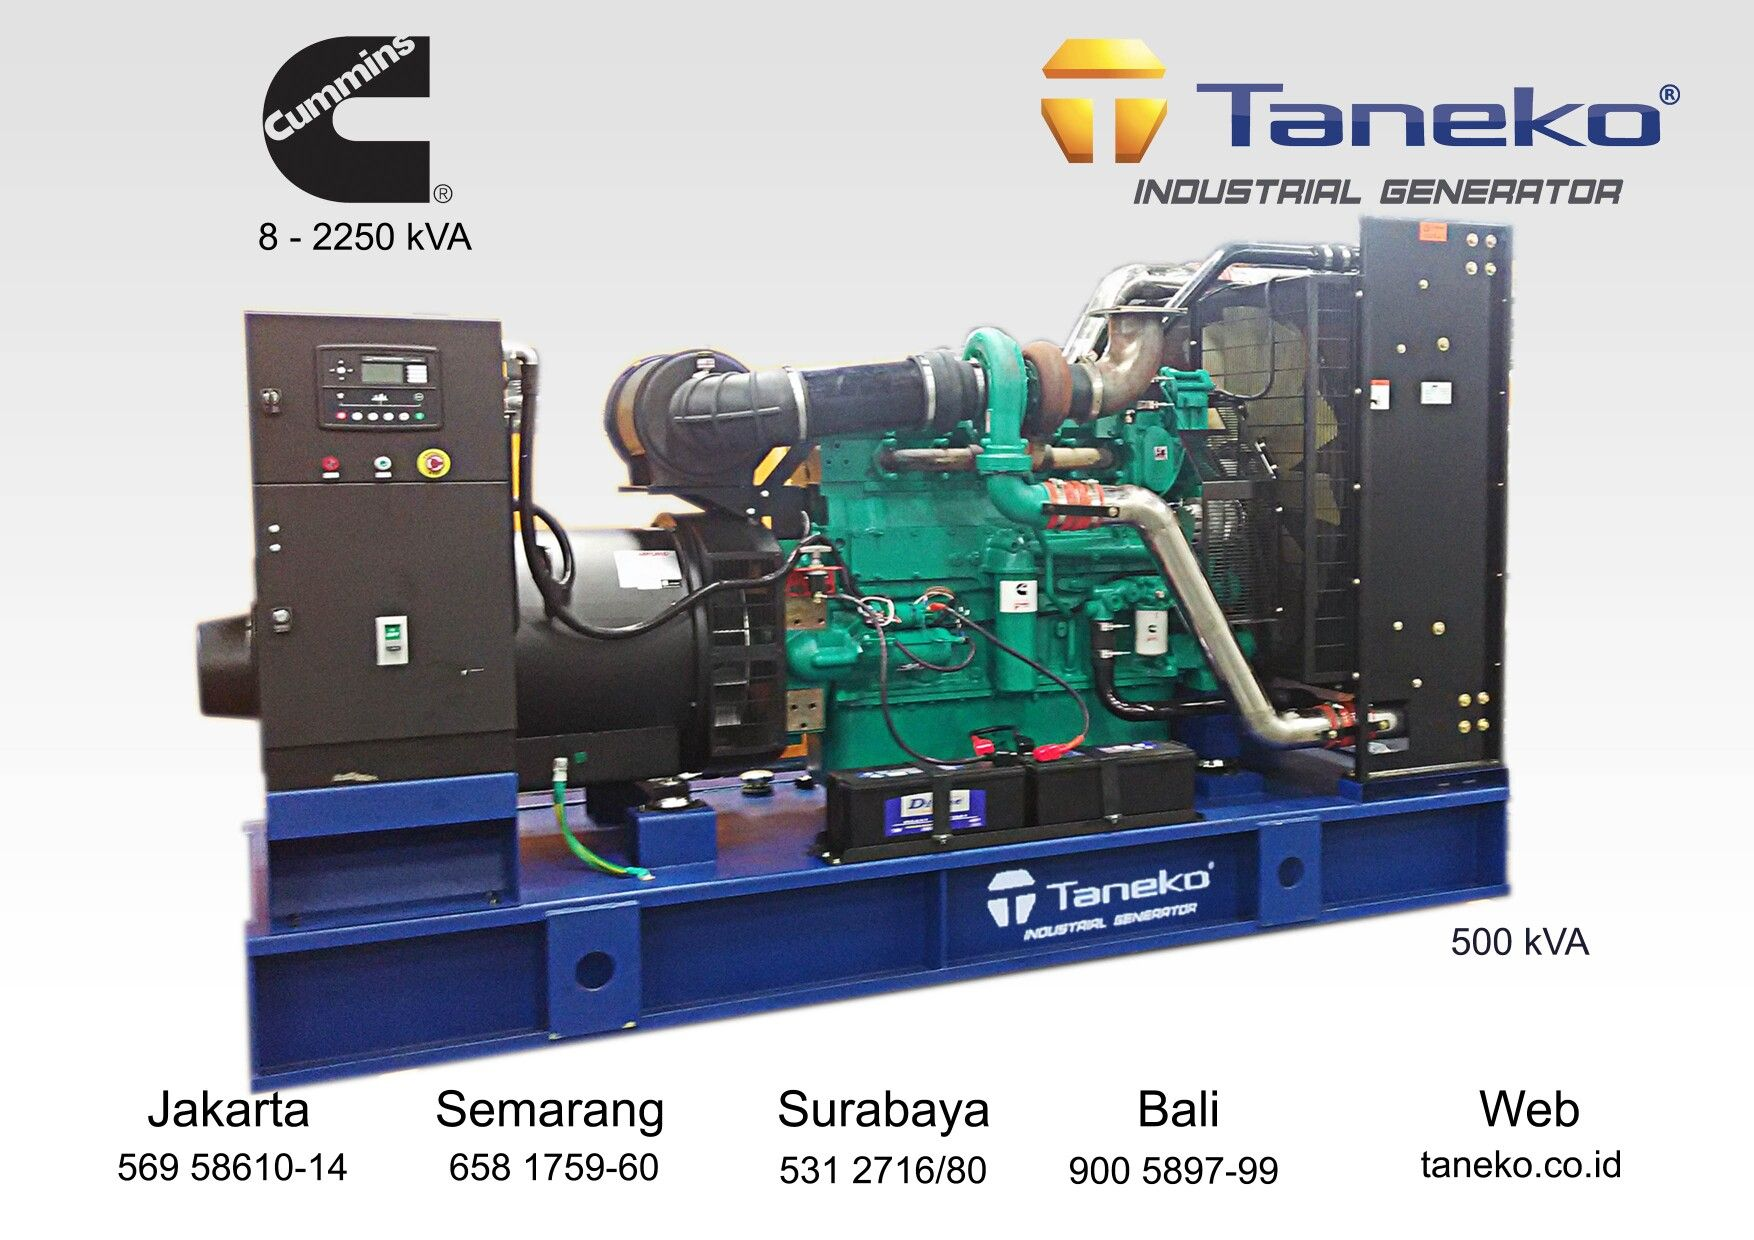 Taneko weeklypost At frame Genset Cummins 500 kVA Open Type